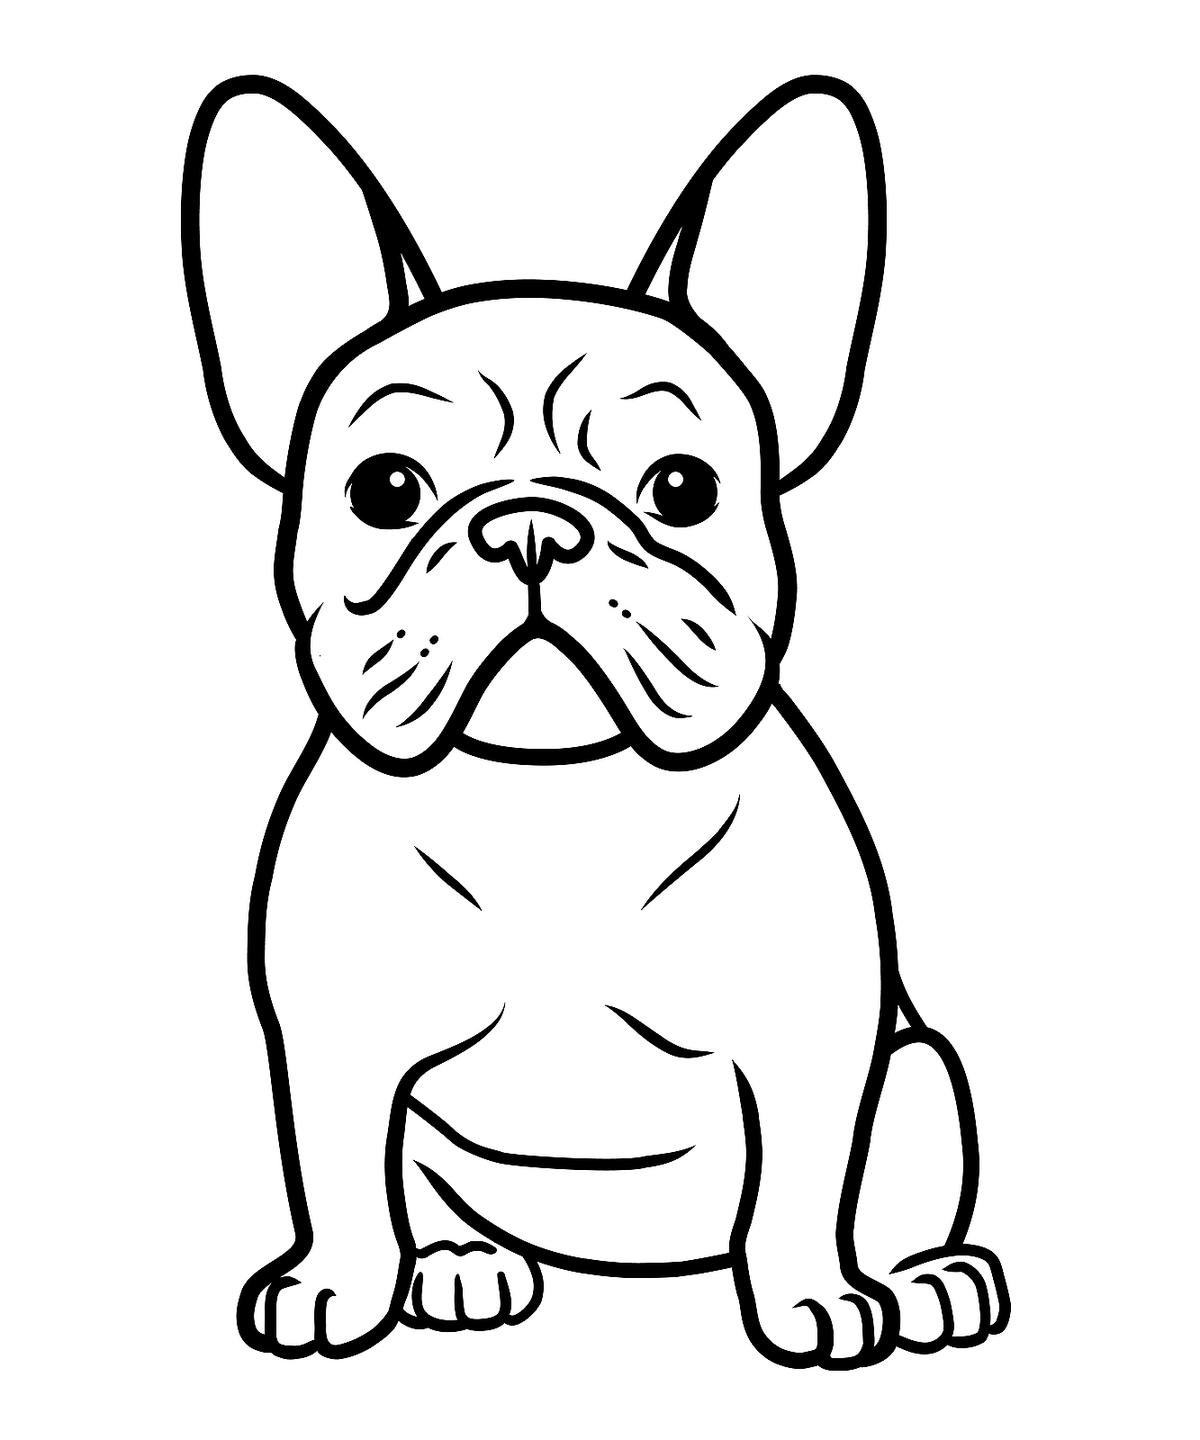 coloring pics of dogs cute dog coloring pages to download and print for free dogs coloring pics of